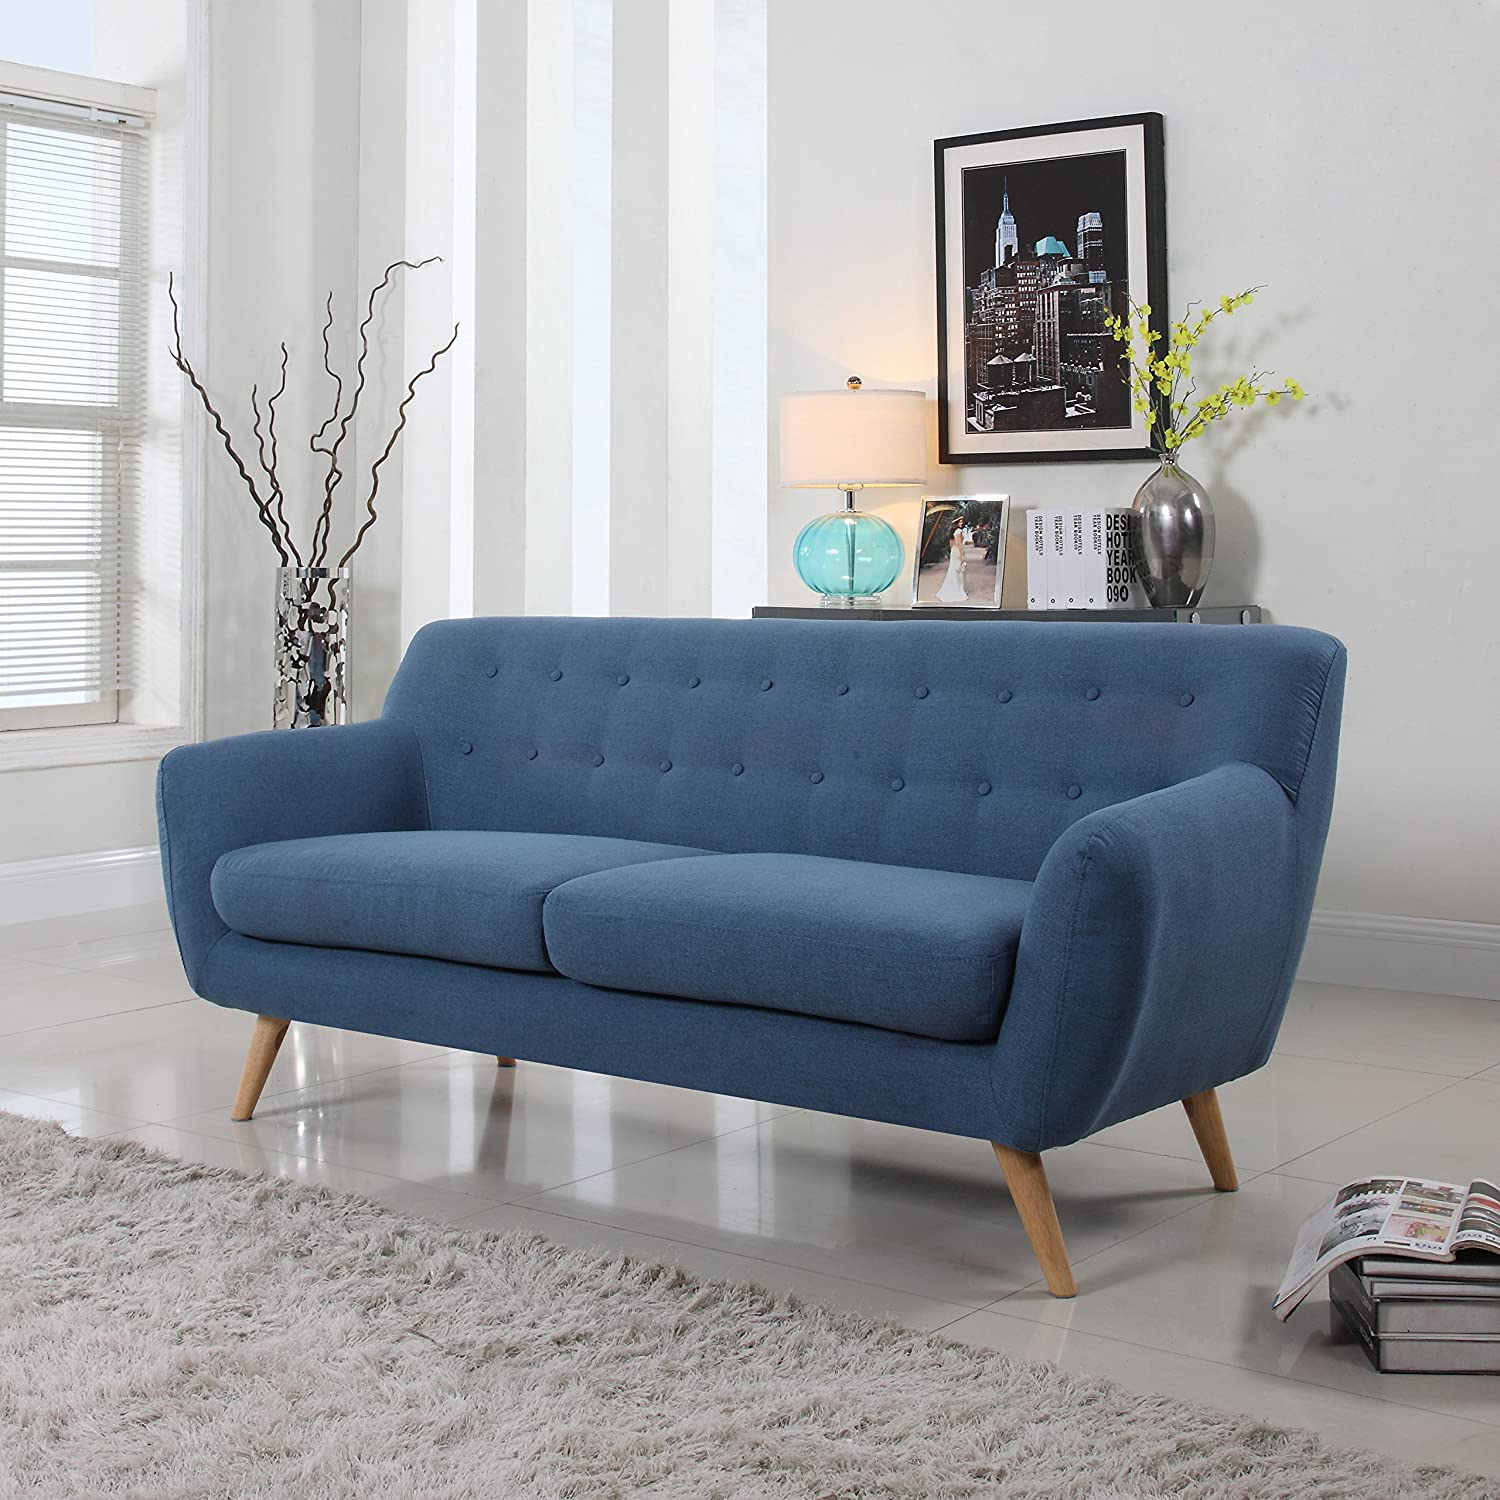 Find This Pin And More Home Decor Sofia Mitte Sofa Bed In